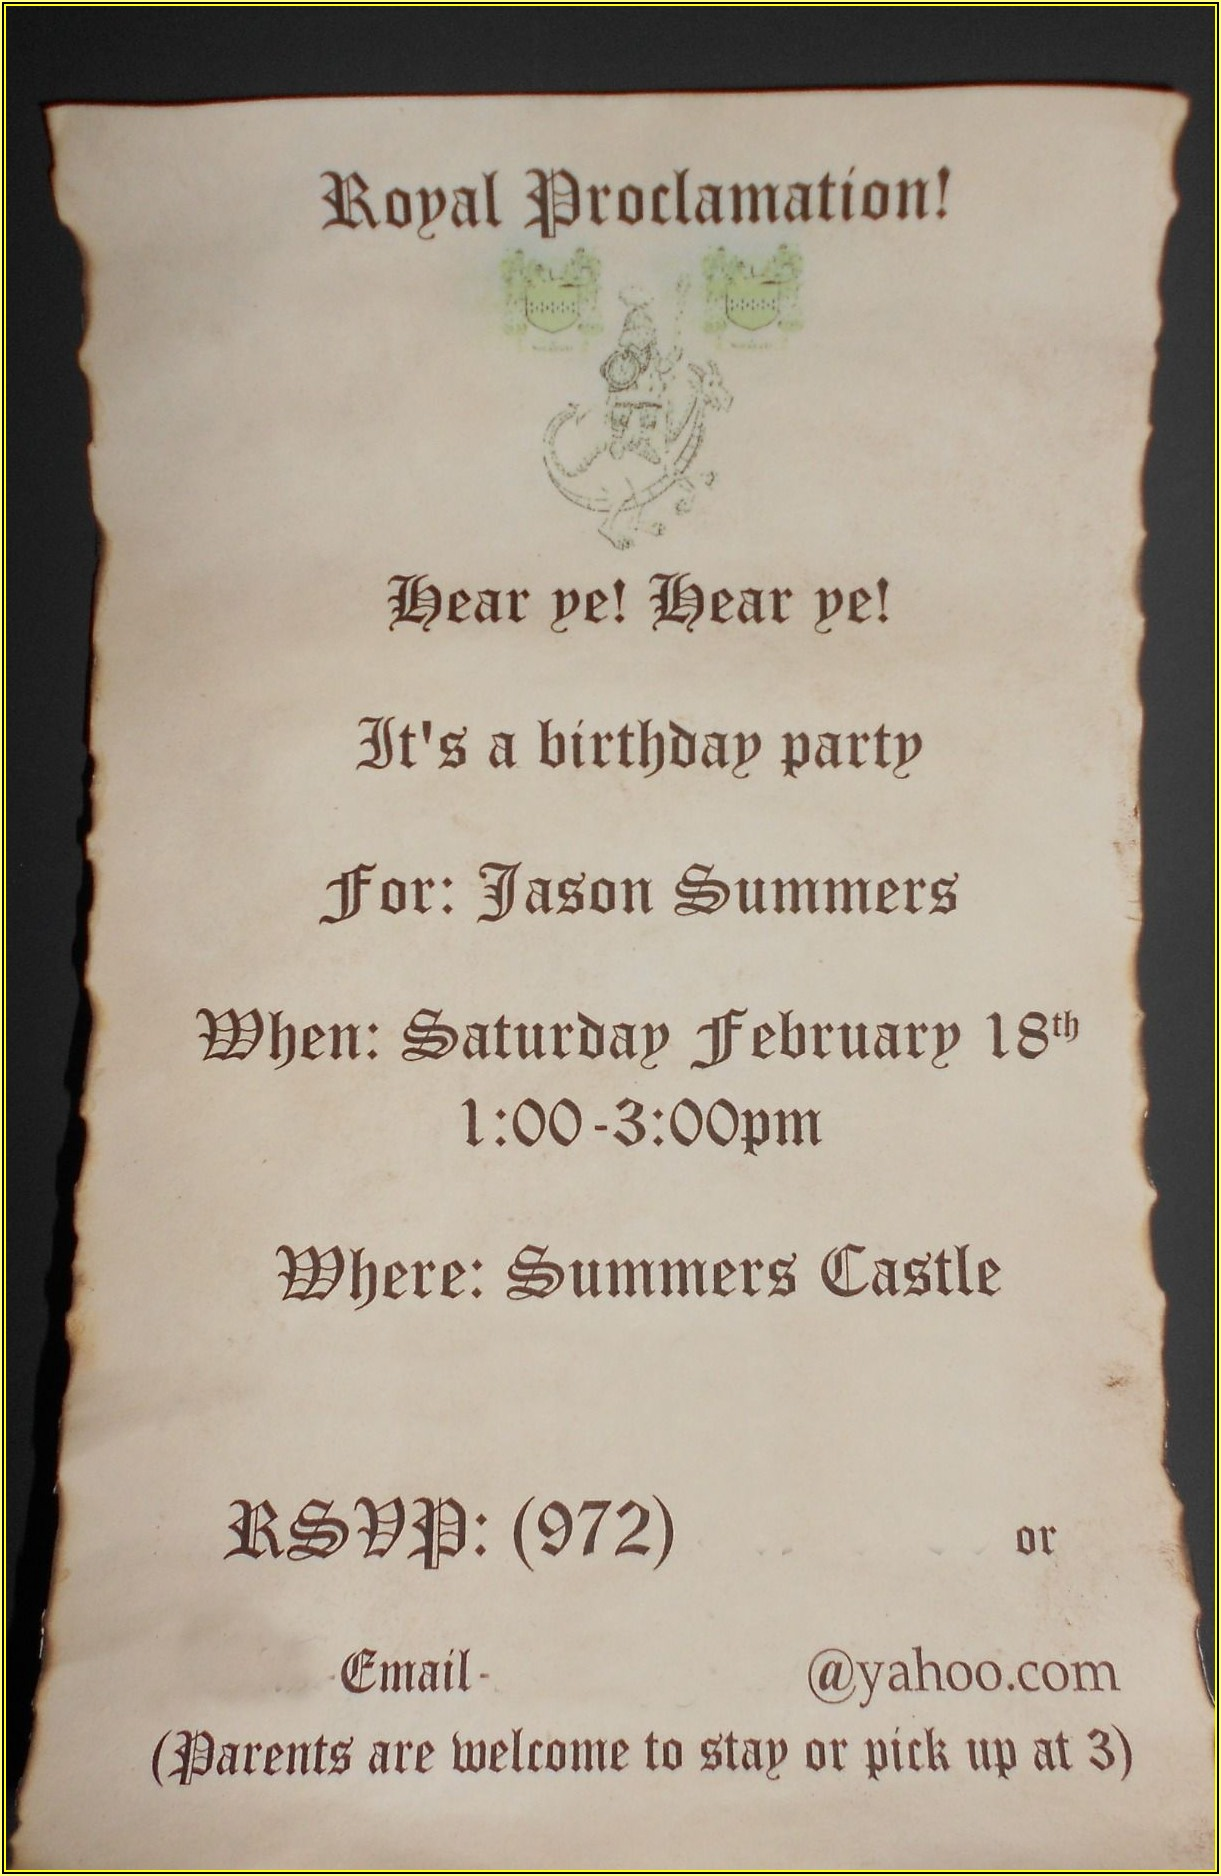 Medieval Banquet Invitation Template